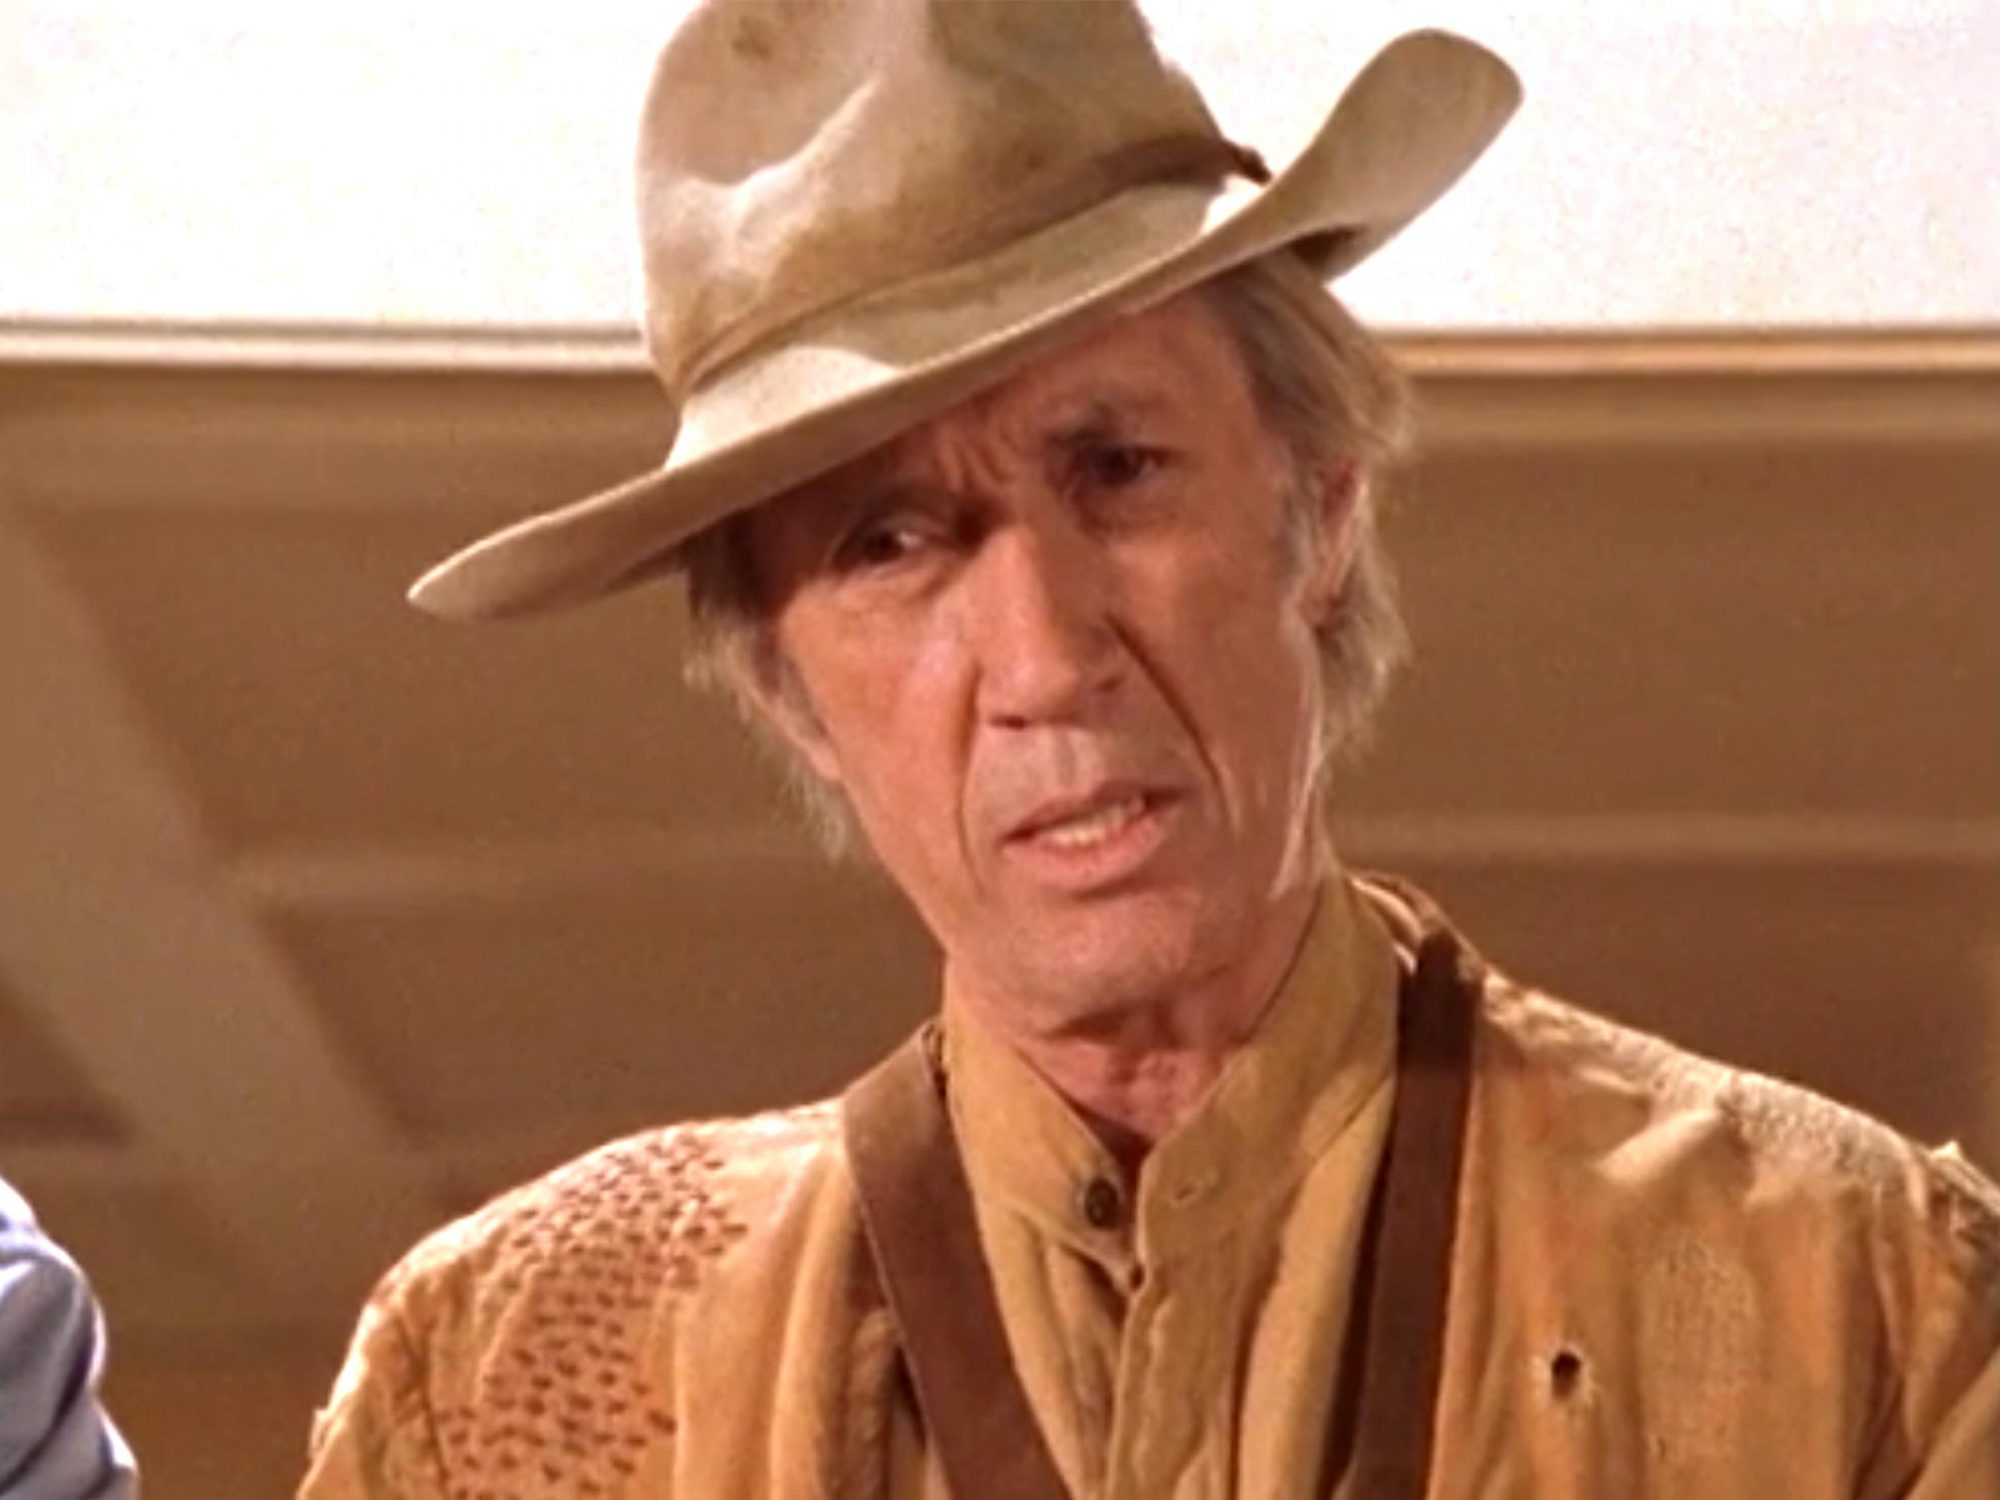 David Carradine as Himself